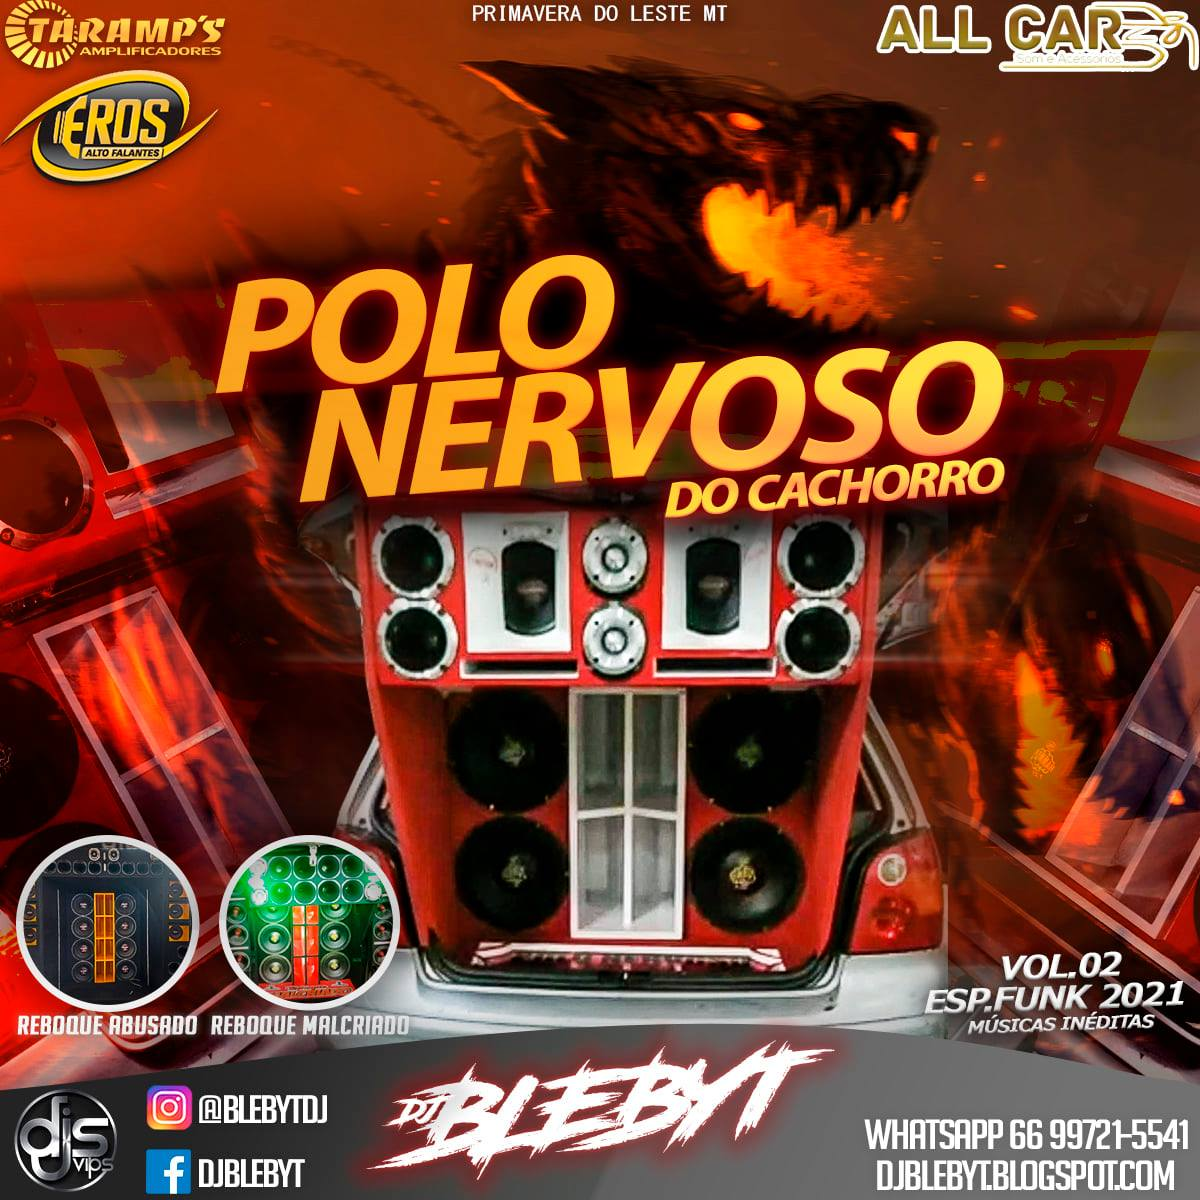 CD POLO NERVOSO DO CACHORRO – ESP. FUNK 2021 VOL.02 -DJ BLEBYT